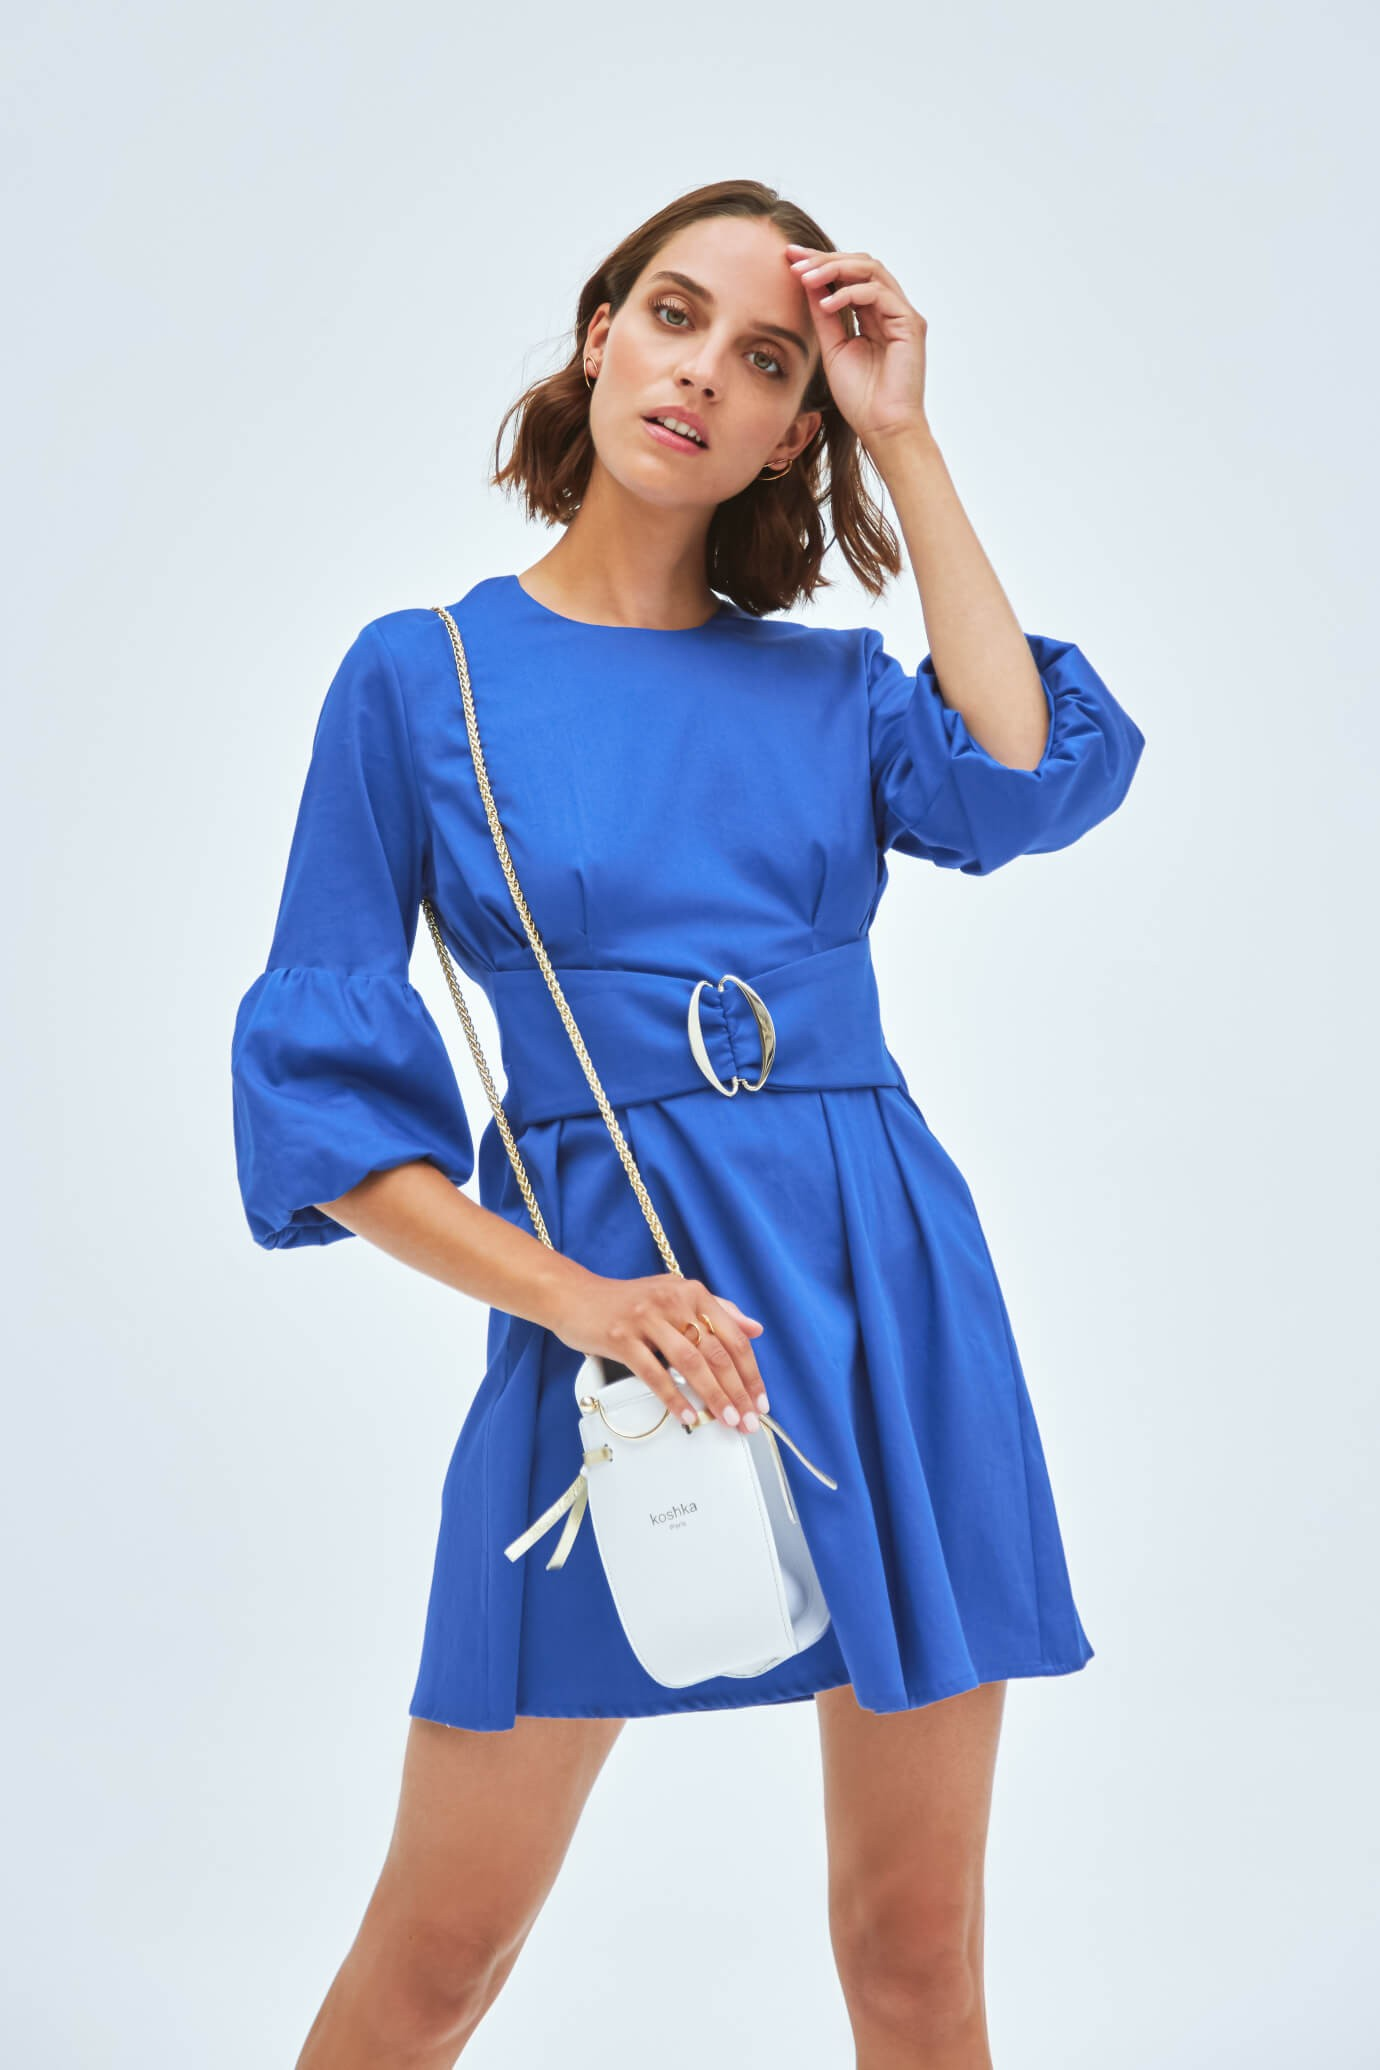 blue dress with a belt included 1